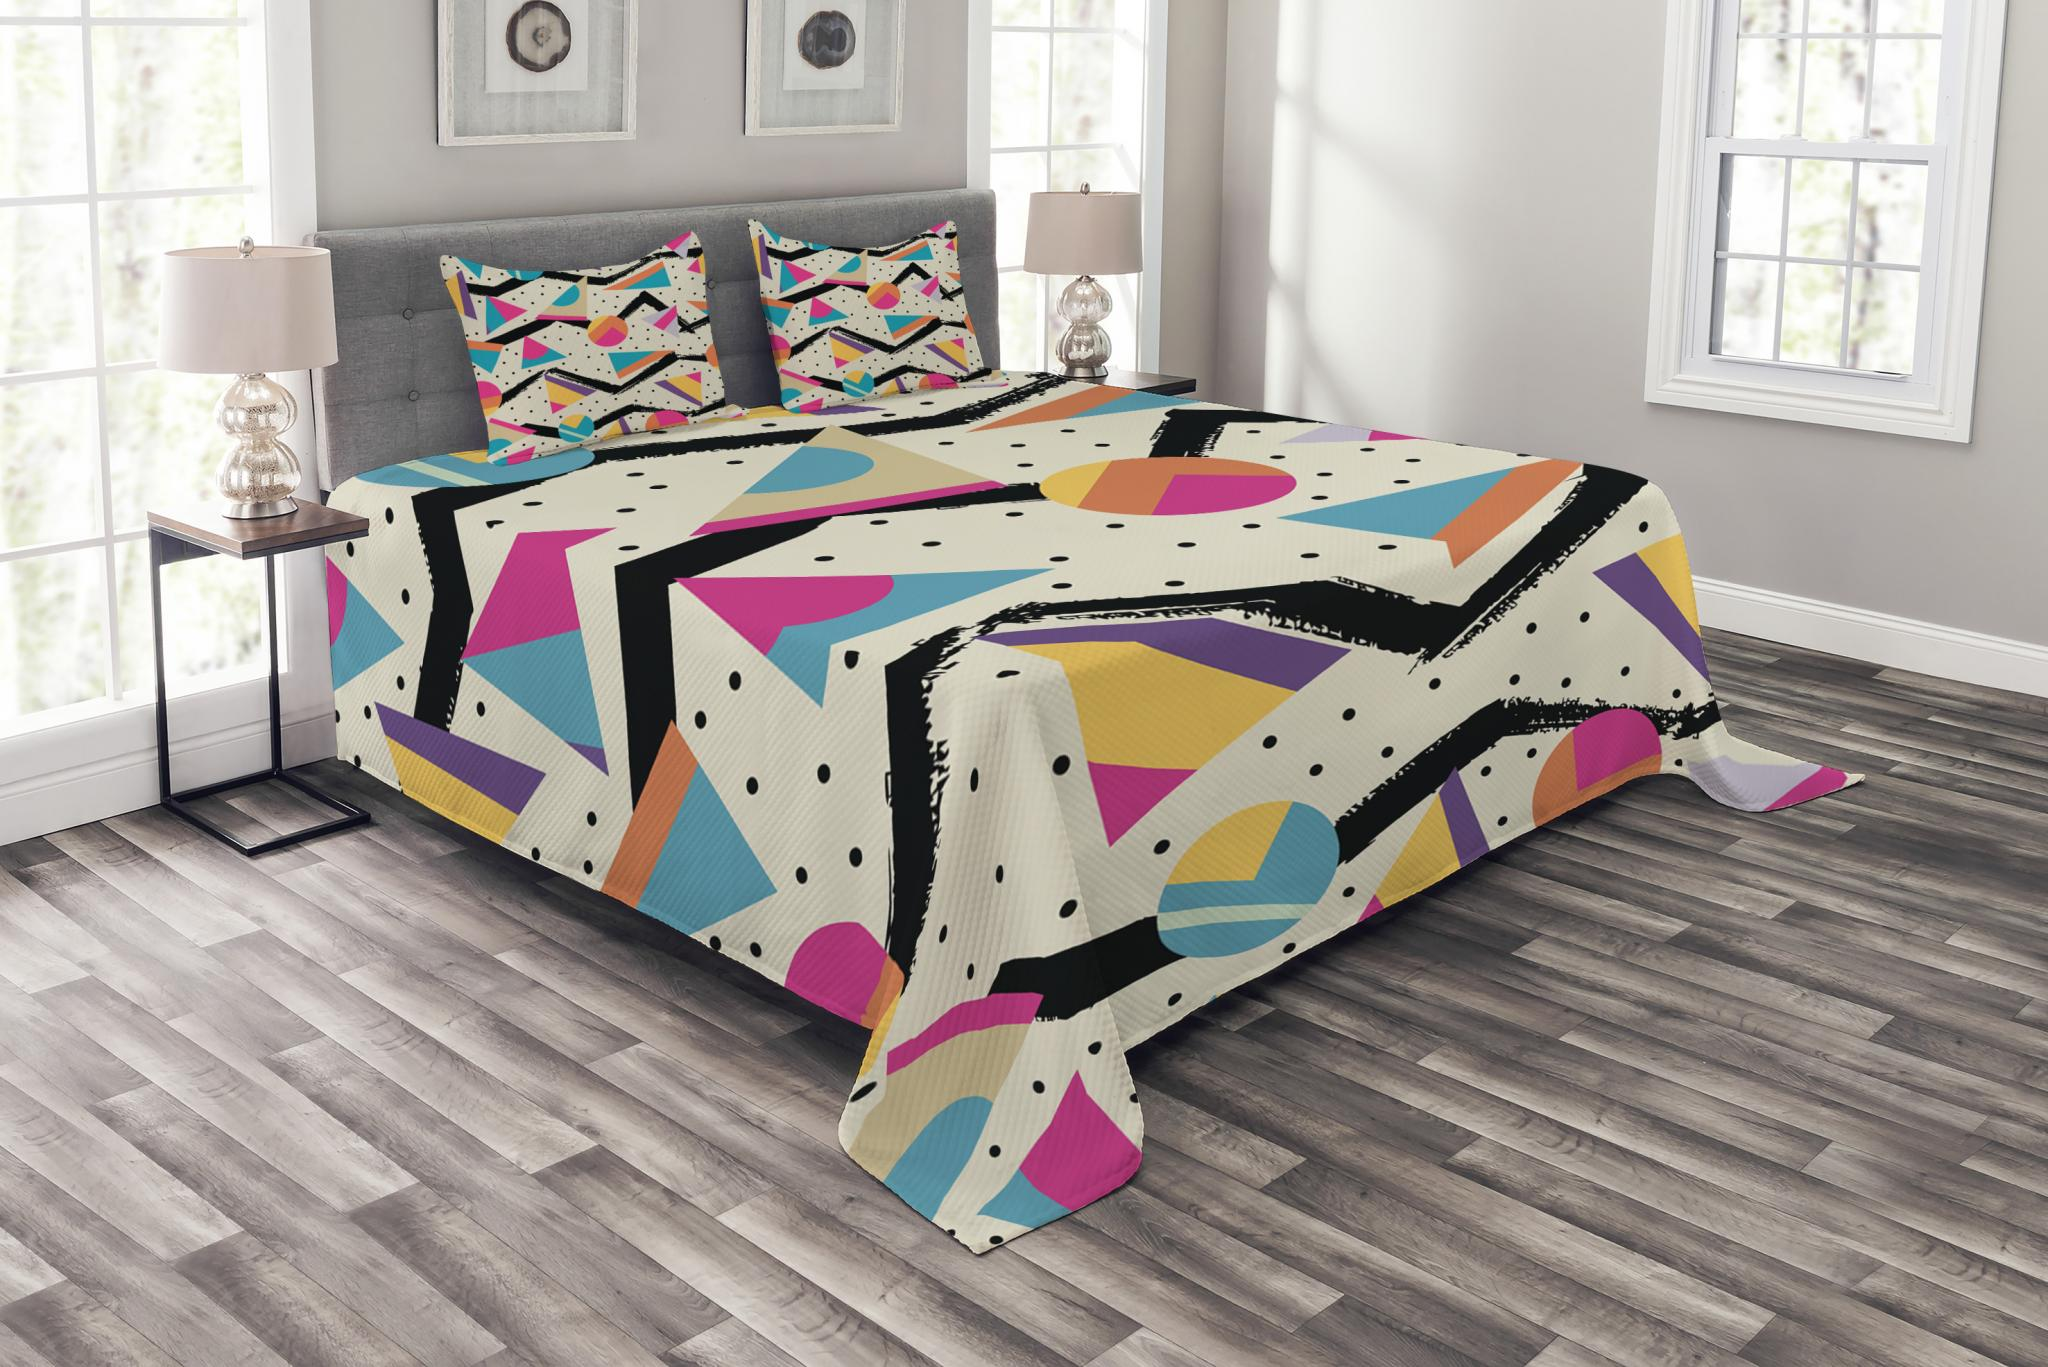 Indie Bedspread Set Eighties Memphis Fashion Style Geometric Abstract Colorful Design With Dots Funky Decorative Quilted Coverlet Set With Pillow Shams Included Multicolor By Ambesonne Walmart Com Walmart Com